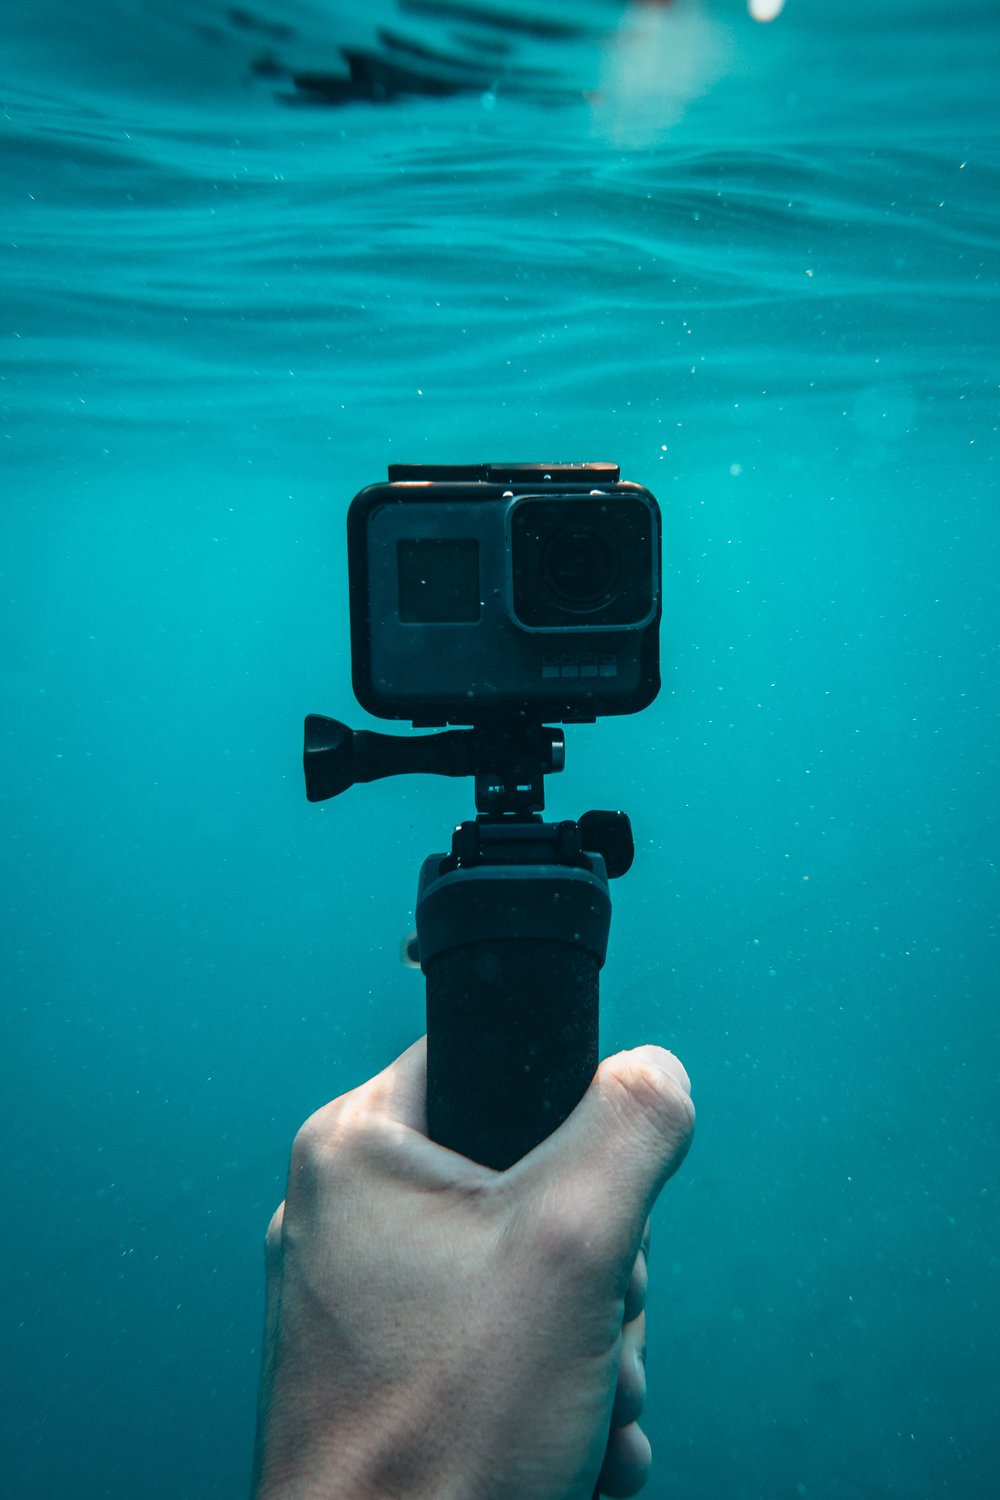 GoPro showcases the capabilities of its products on Instagram.